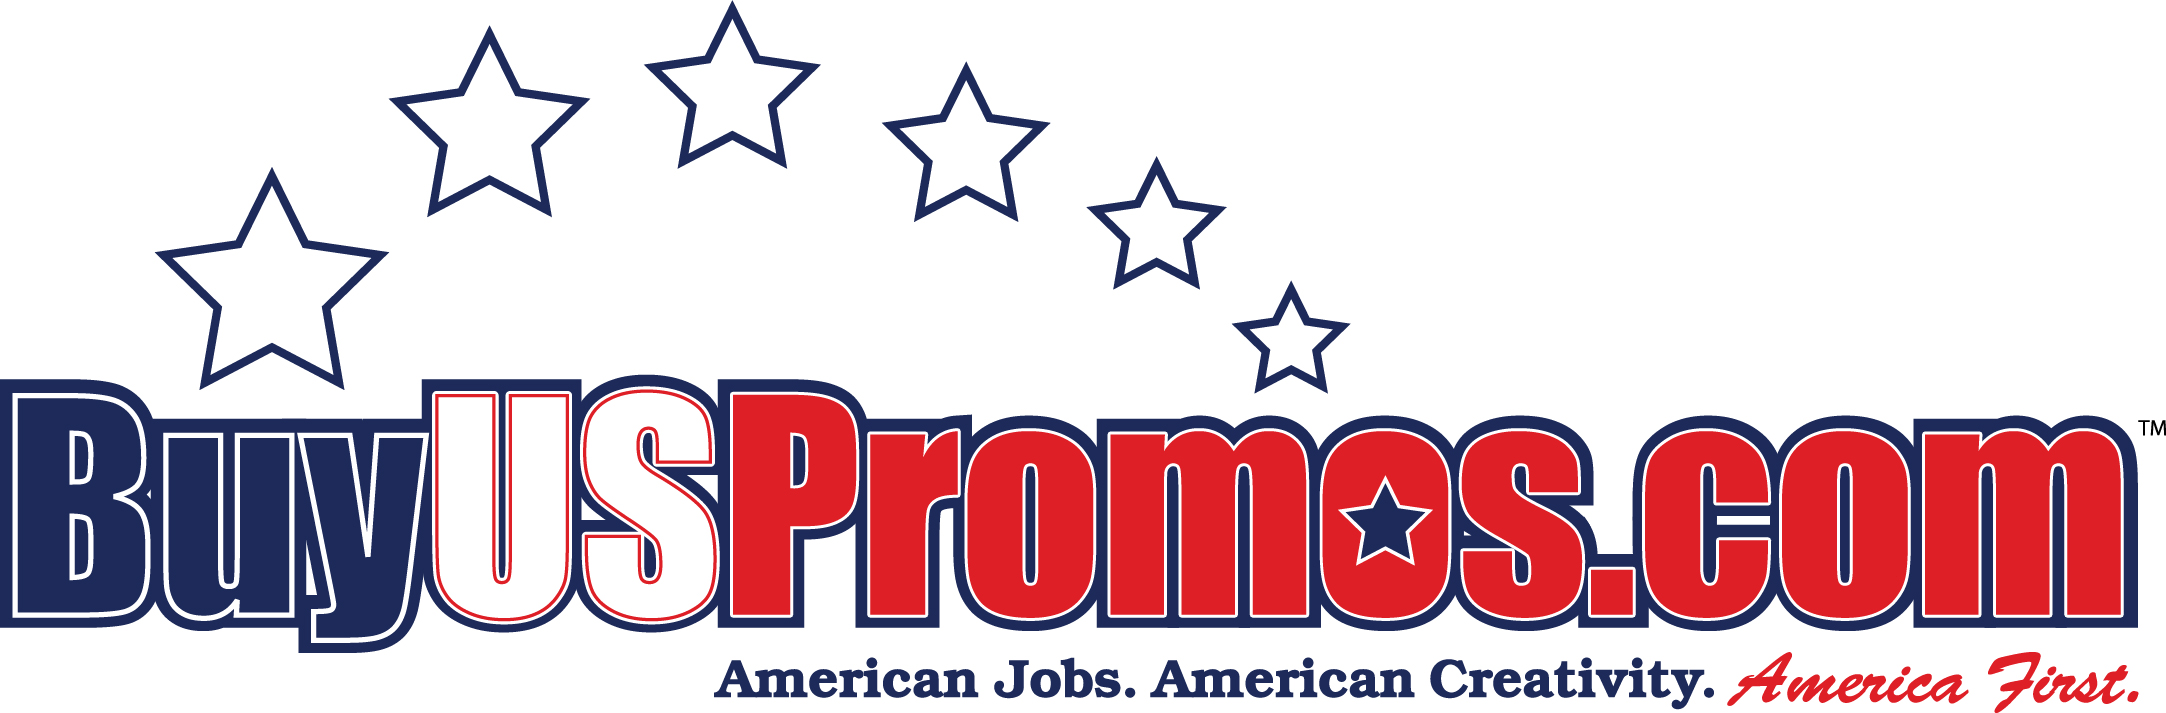 American made promotional products